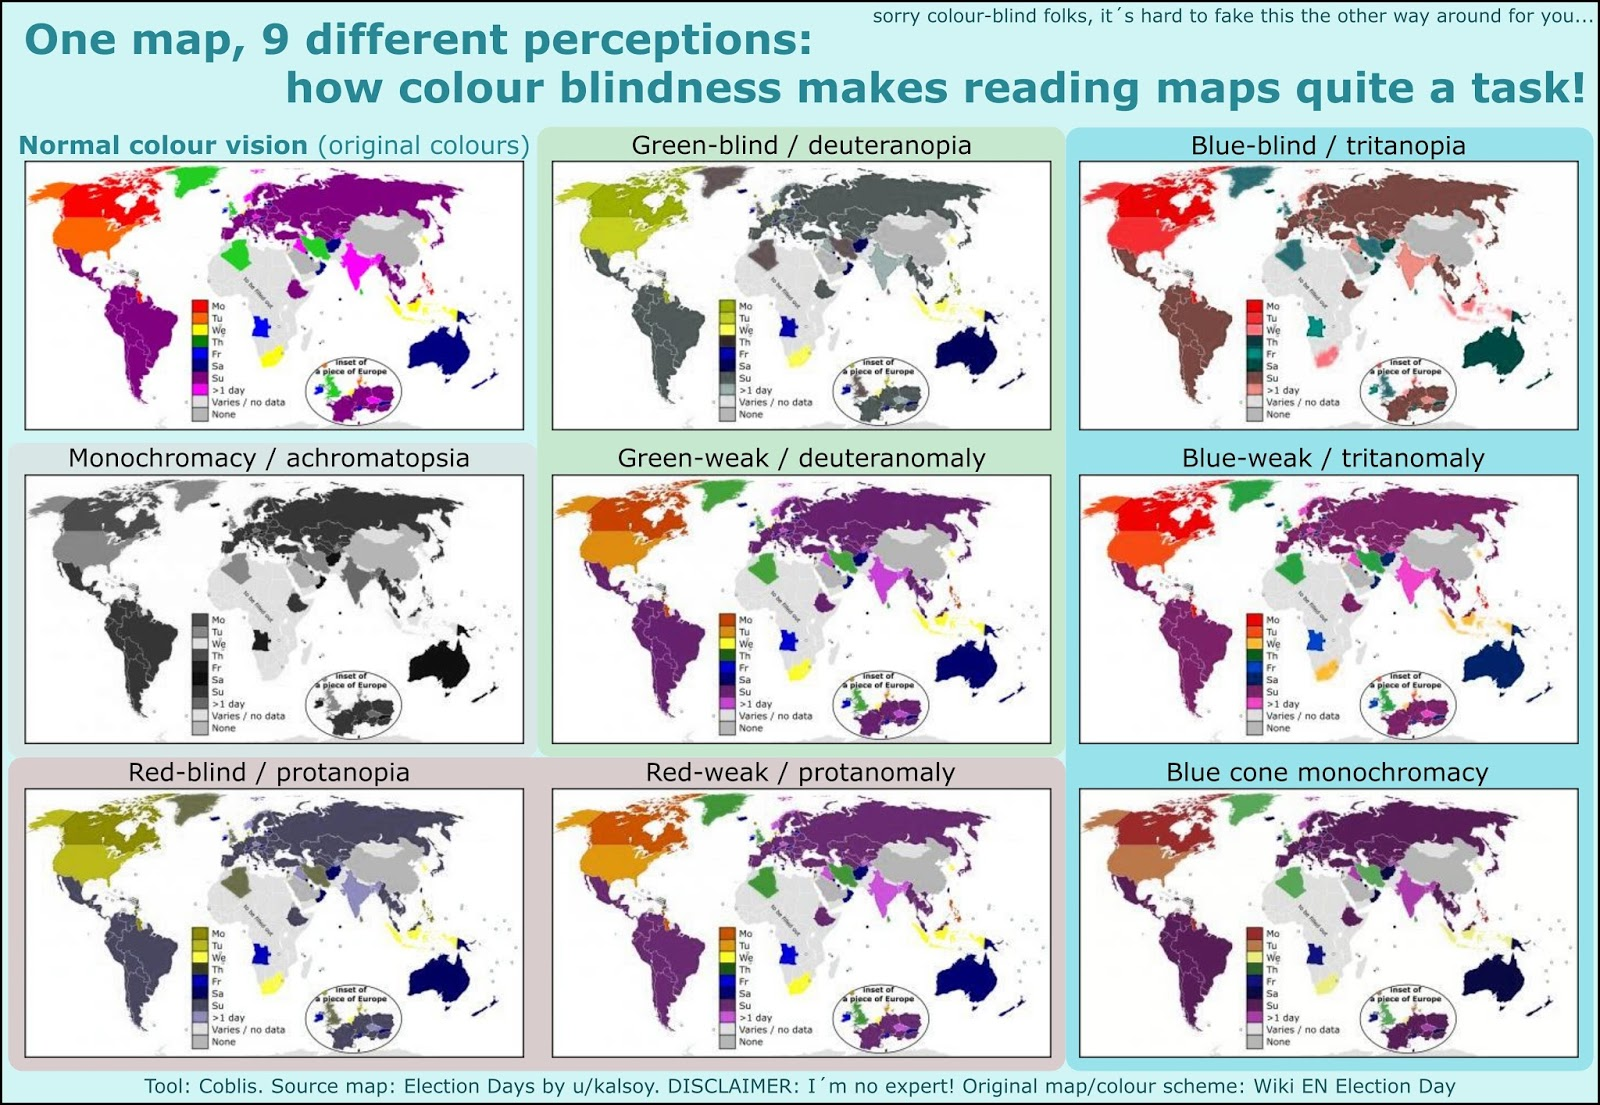 Through the eyes of a colour-blind: Simulating how their world maps are coloured